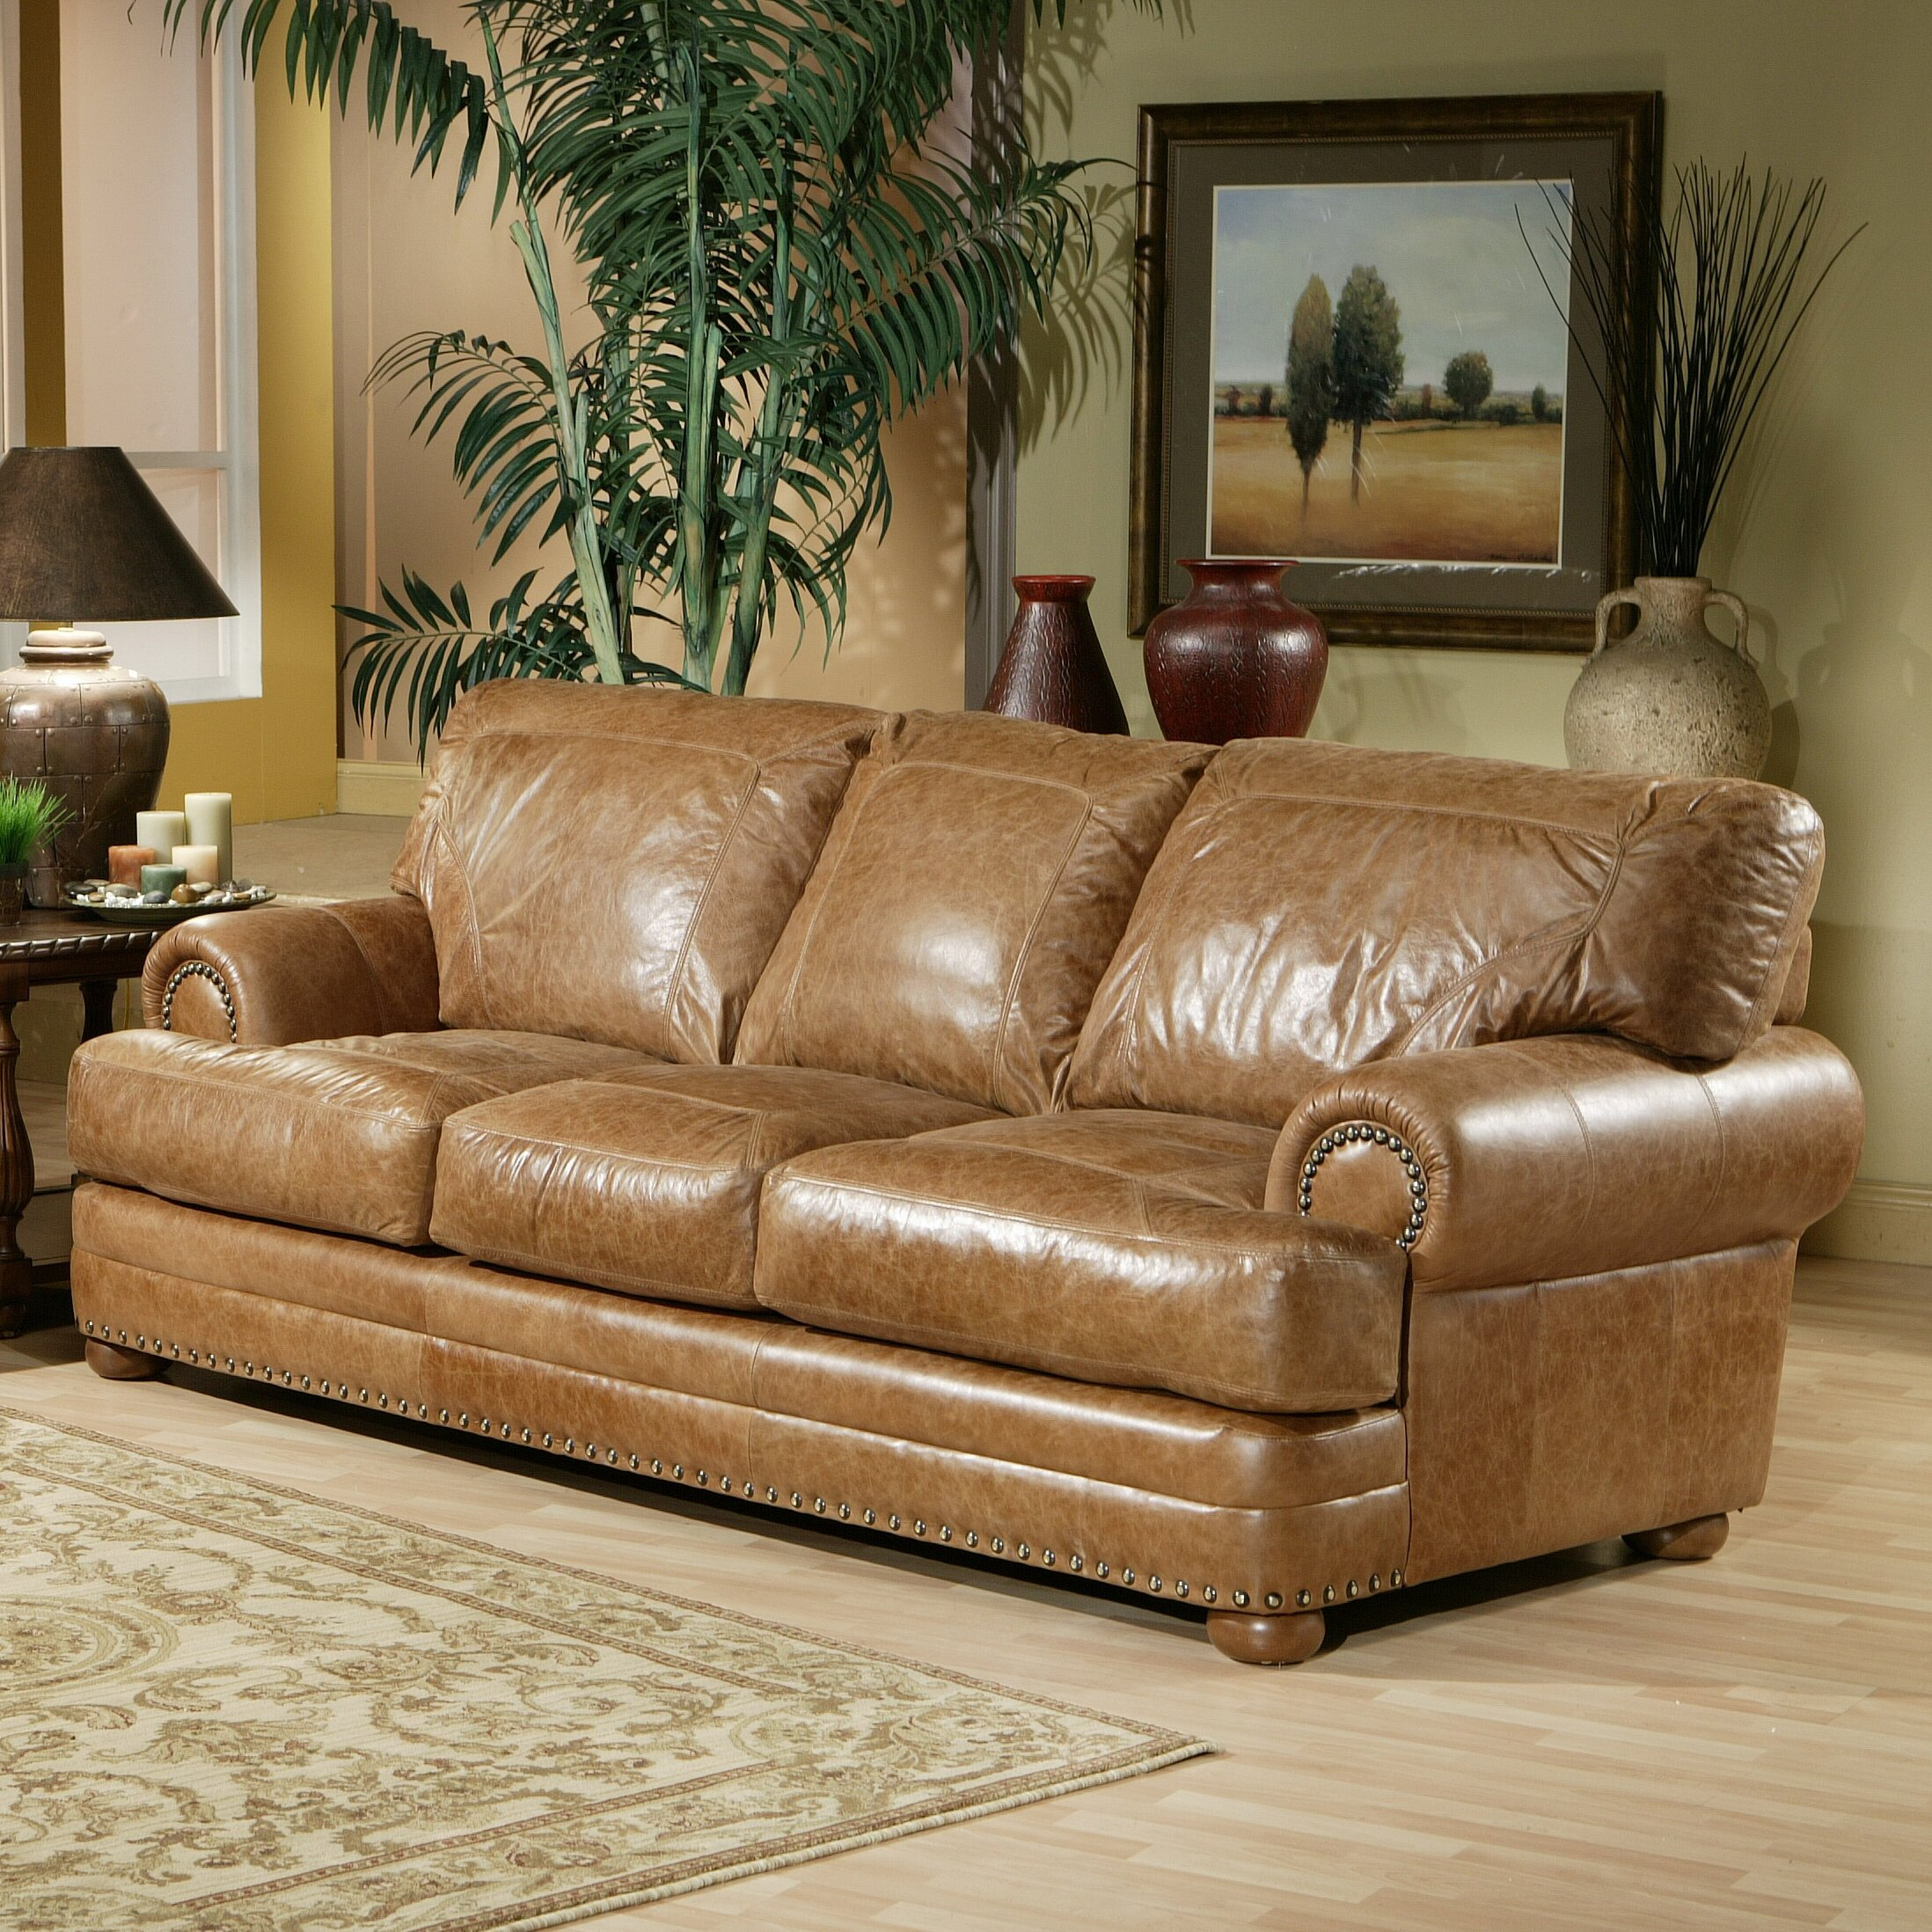 Omnia leather houston leather sofa reviews wayfair for I furniture houston